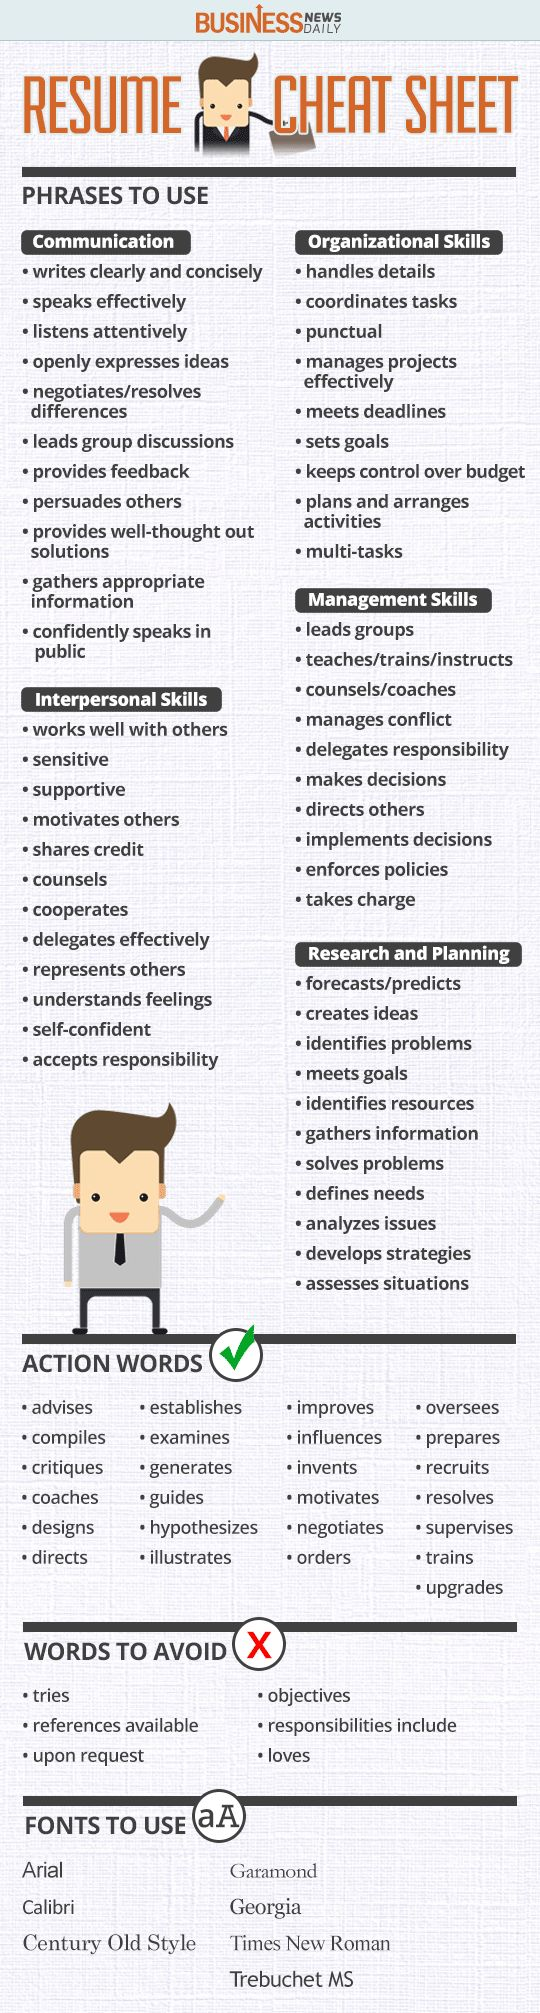 Opposenewapstandardsus  Pleasant  Ideas About Resume On Pinterest  Cv Format Resume Cv And  With Fetching Resume Cheat Sheet Infographic Andrews Almost Done With A Complete Unit On Employment Which With Delightful Boston College Resume Also District Manager Resume Sample In Addition Medical Assistant Externship Resume And Nursing Resumes Samples As Well As Resume Mba Additionally College Admission Resume Template From Pinterestcom With Opposenewapstandardsus  Fetching  Ideas About Resume On Pinterest  Cv Format Resume Cv And  With Delightful Resume Cheat Sheet Infographic Andrews Almost Done With A Complete Unit On Employment Which And Pleasant Boston College Resume Also District Manager Resume Sample In Addition Medical Assistant Externship Resume From Pinterestcom